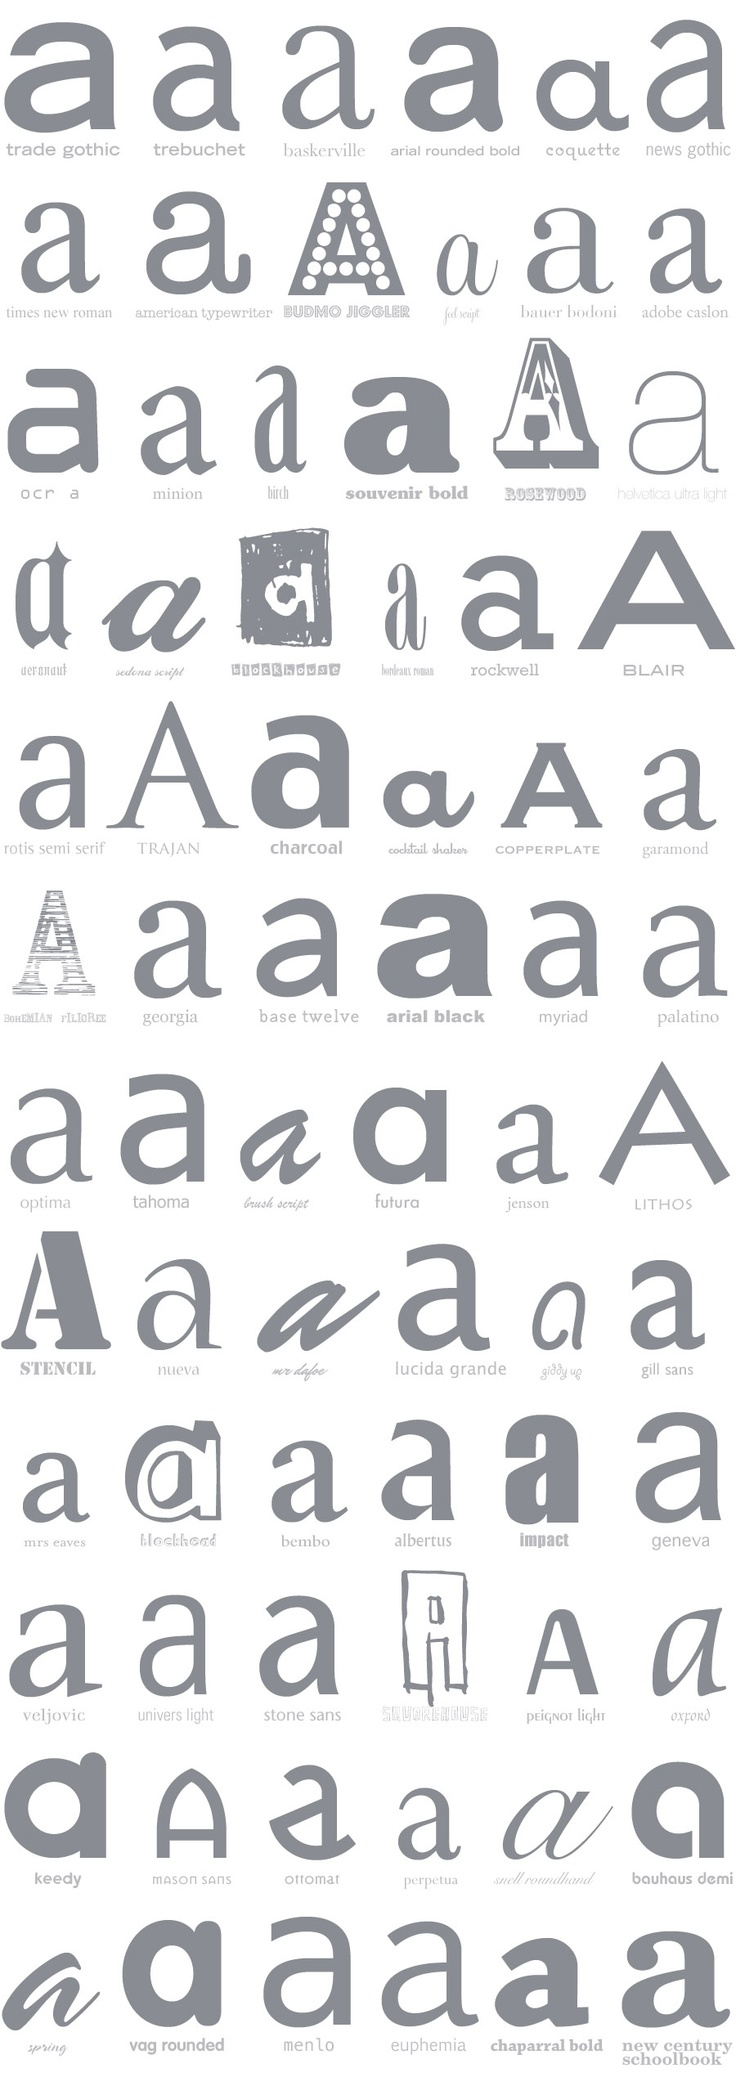 Lowercase letter a. #typography